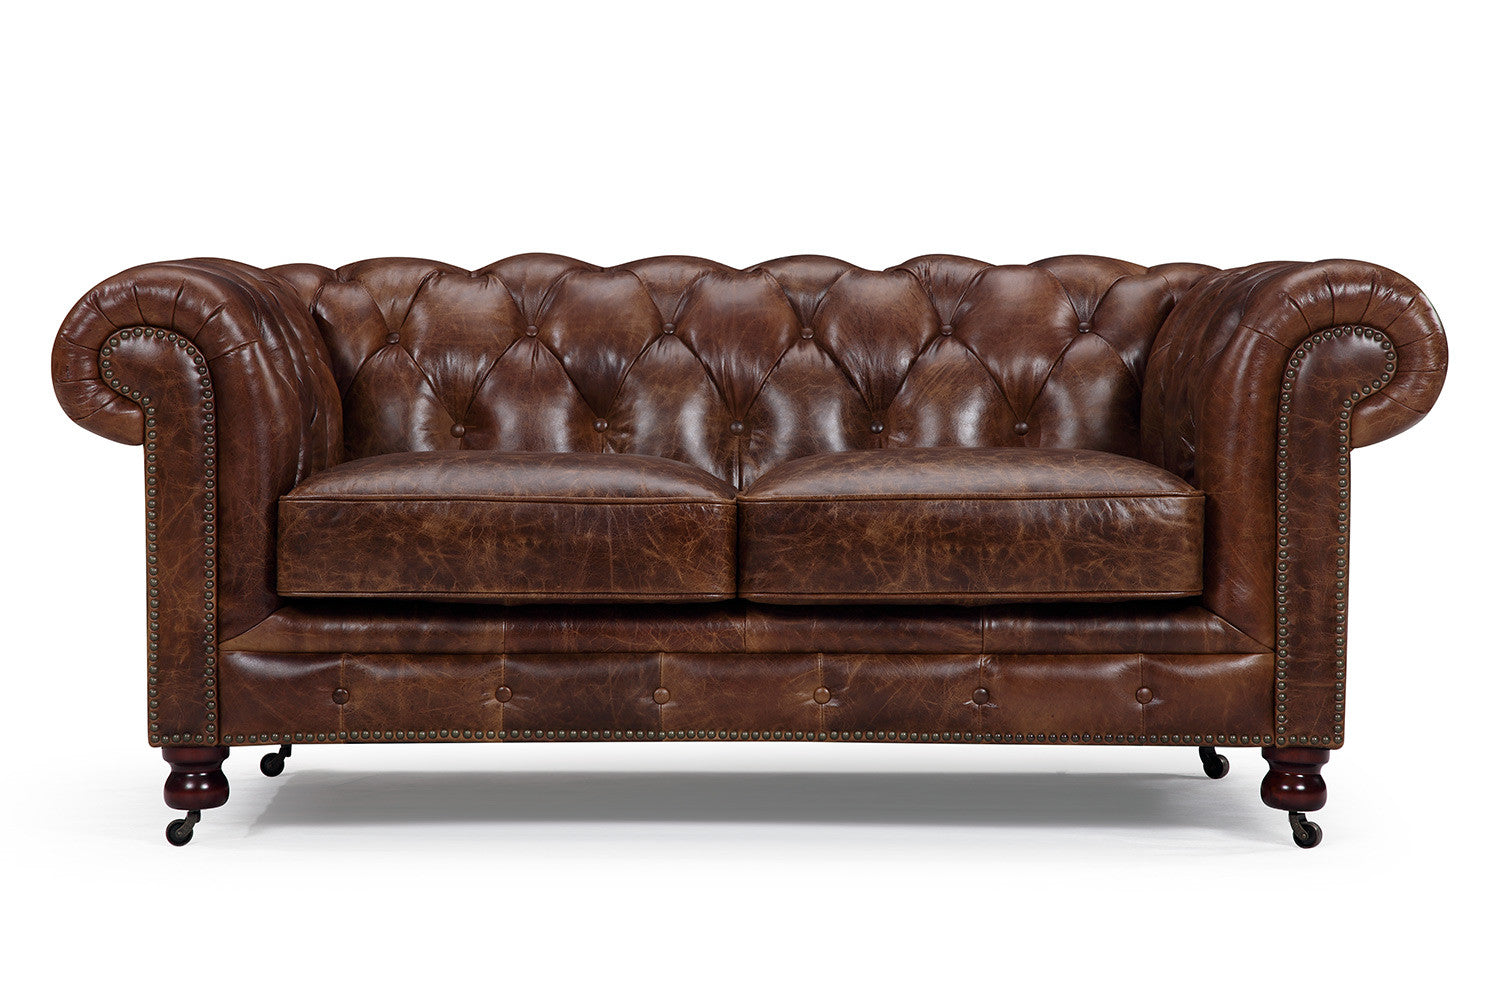 Canap chesterfield en cuir kensington 2 places rose moore for Canape chesterfield cuir